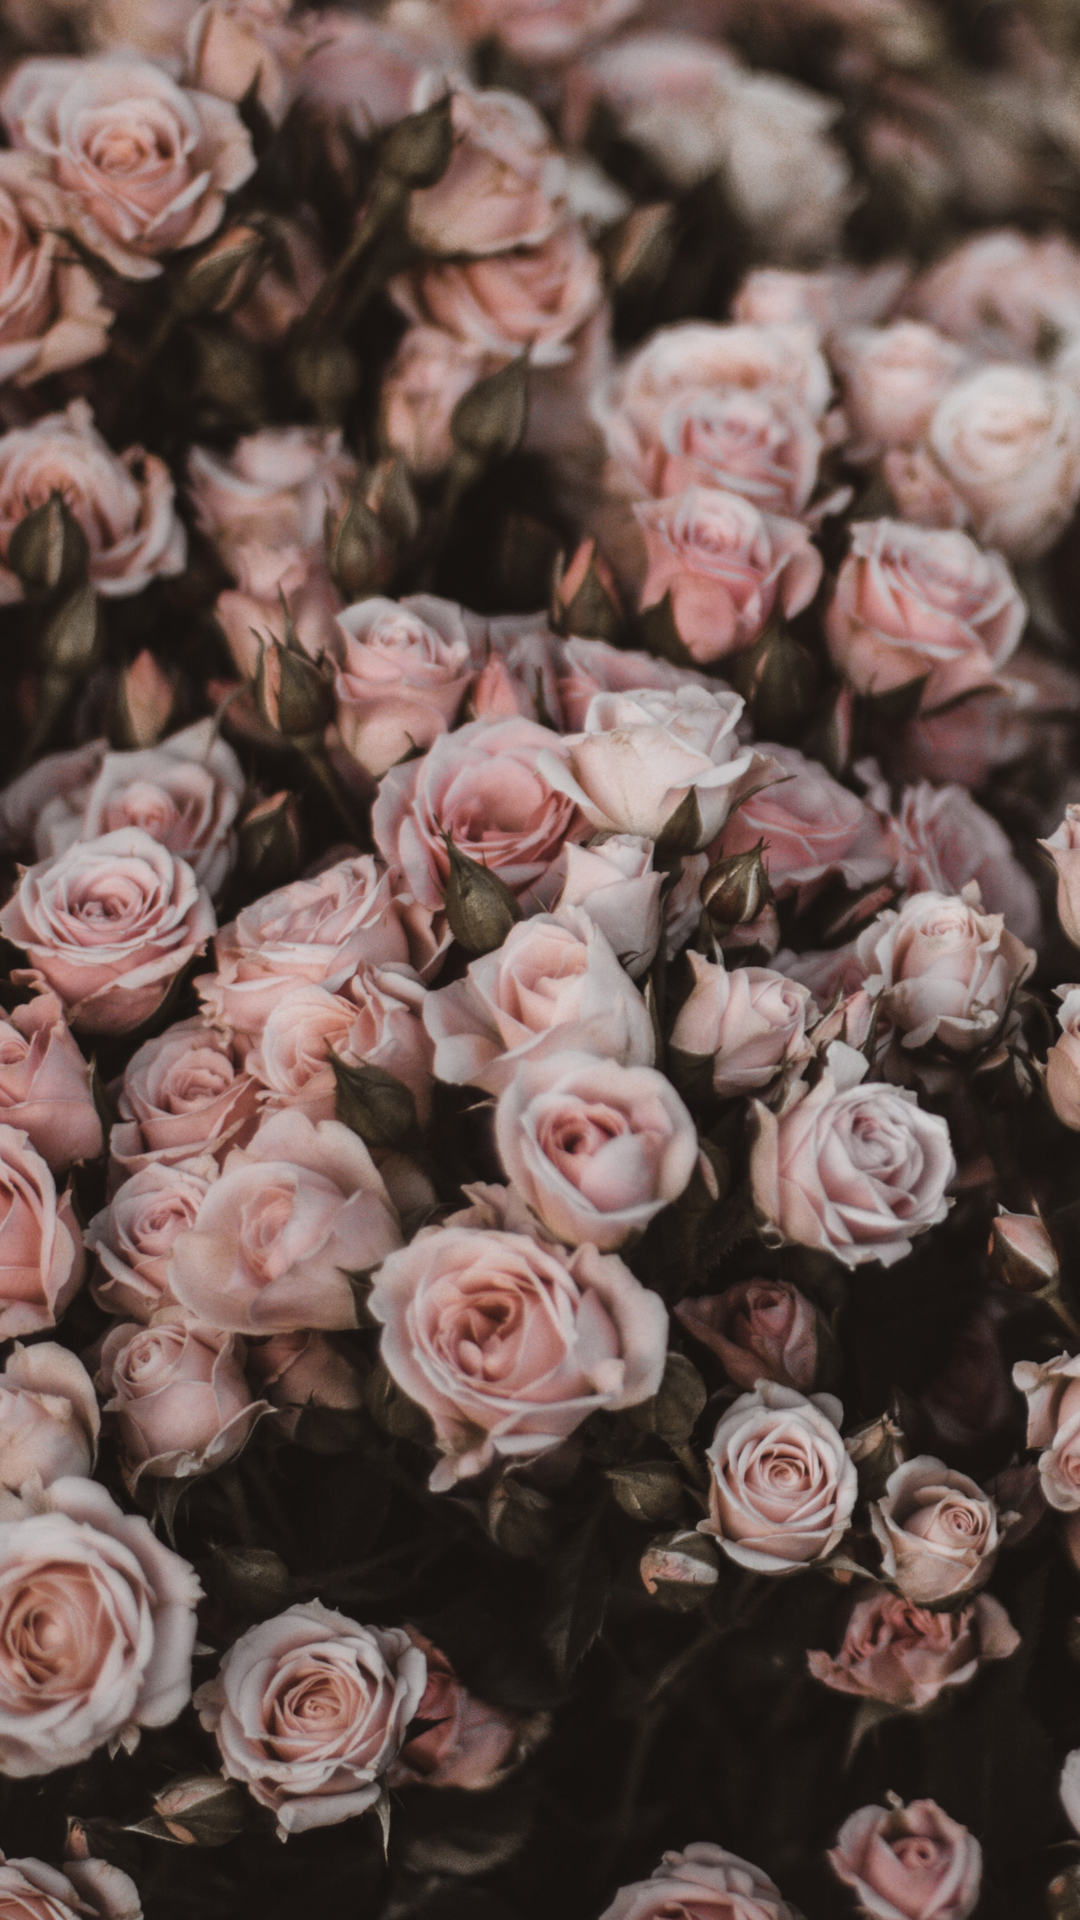 Roses Wallpaper Backgrounds For iPhone